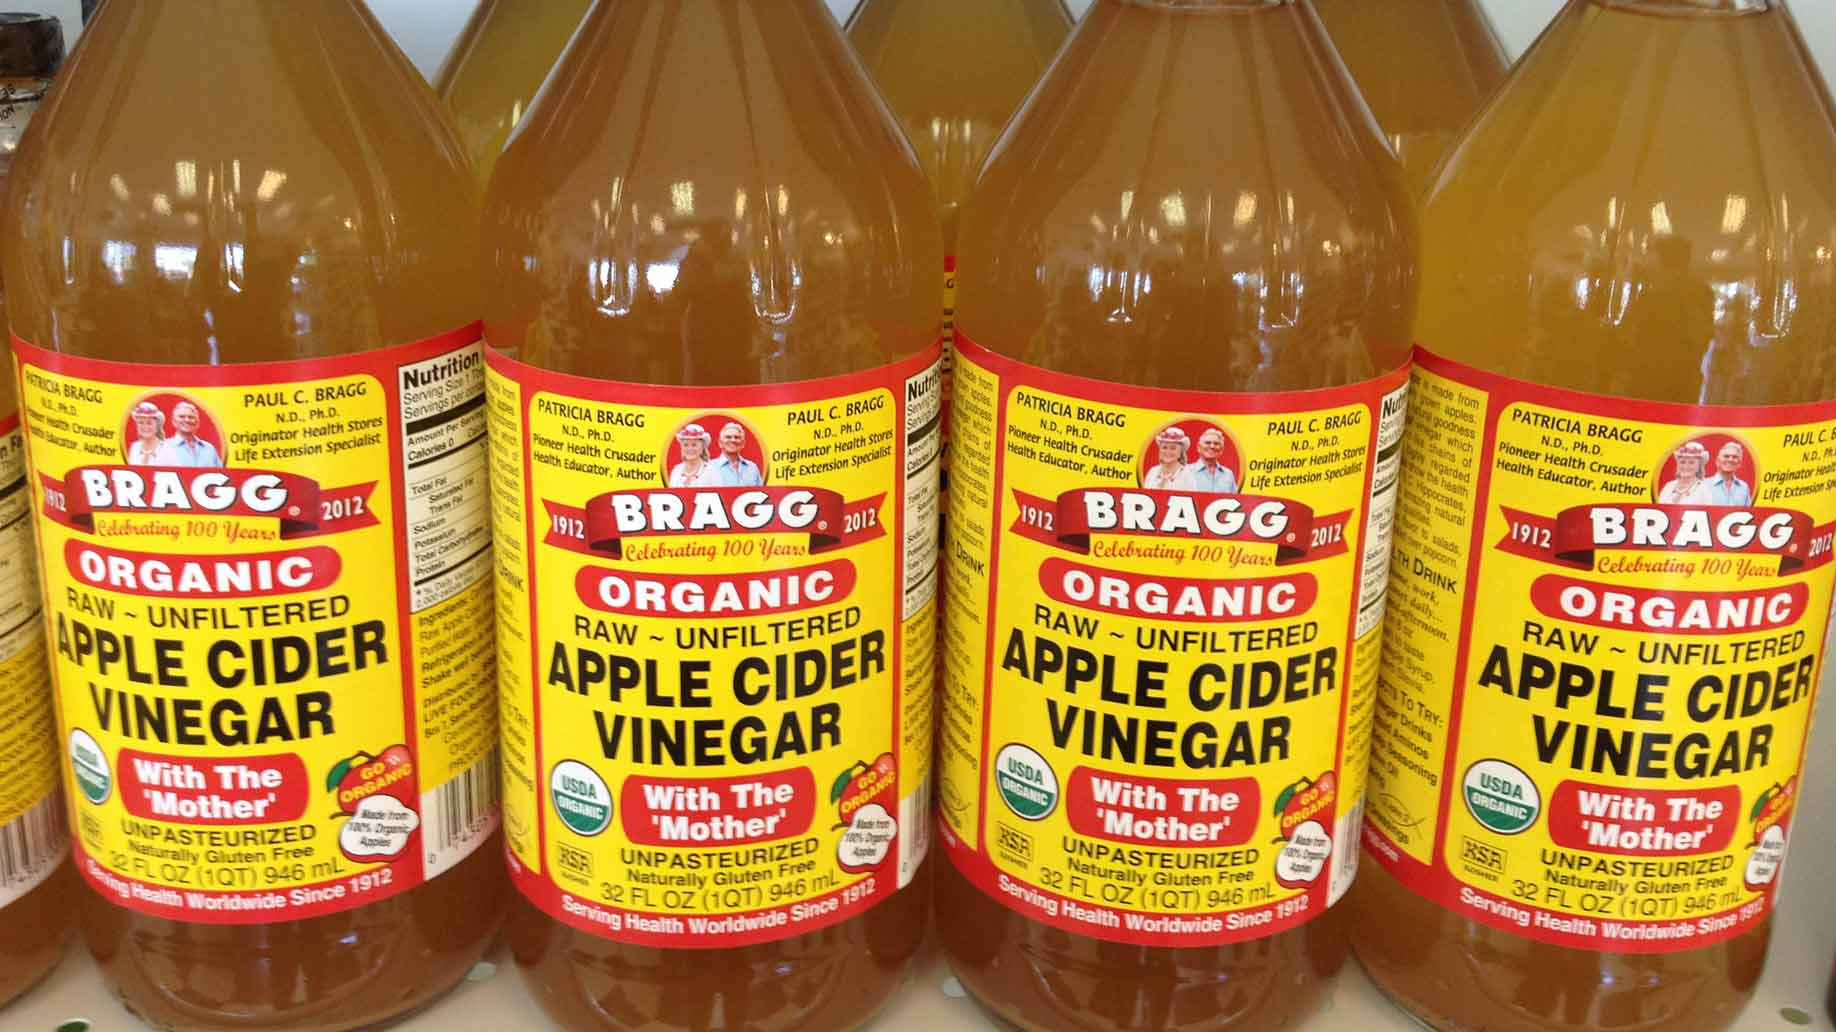 Apple cider vinegar is a type of vinegar that is produced from aged, crushed apples. The fruit sugar in the apple is converted into alcohol through a process called yeast fermentation.